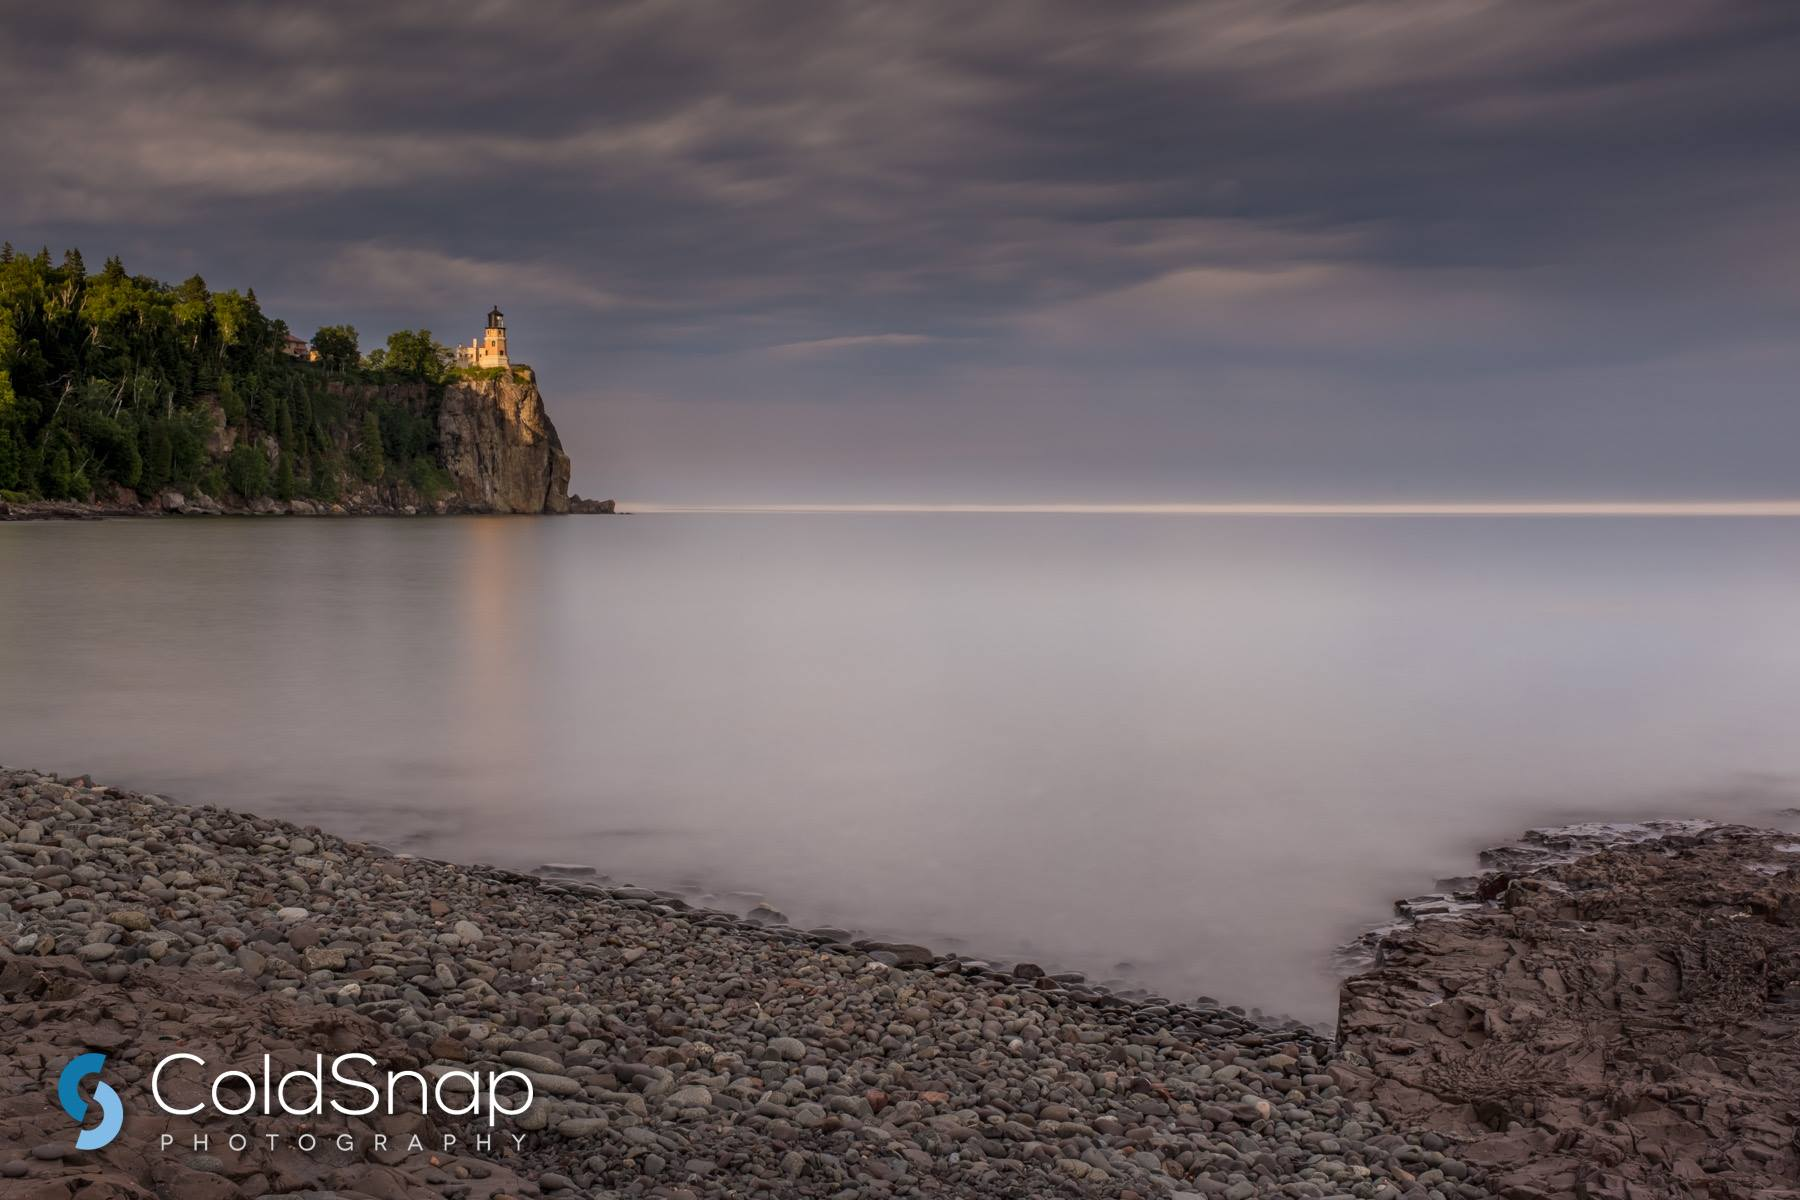 Split Rock Lighthouse and Pebble Beach at Sunset / John Gregor